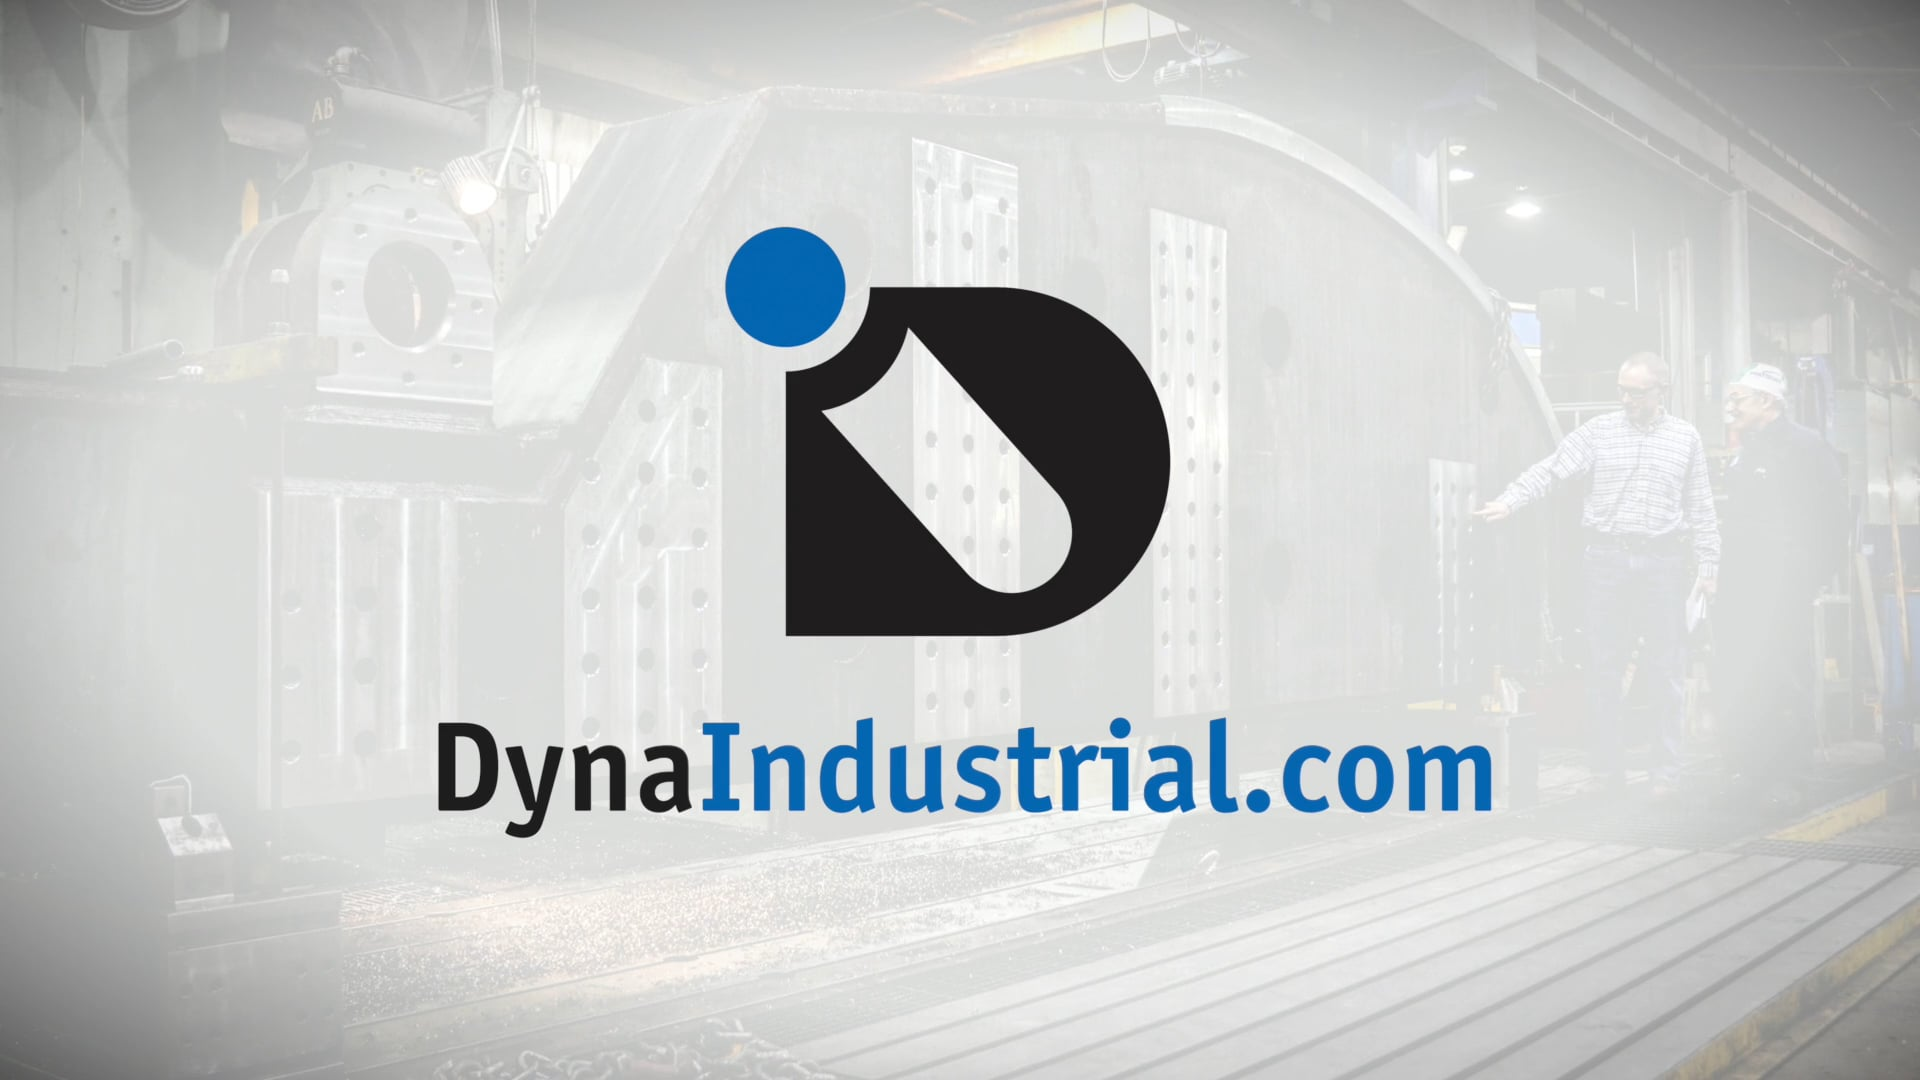 Video thumbnail for DYNAINDUSTRIAL